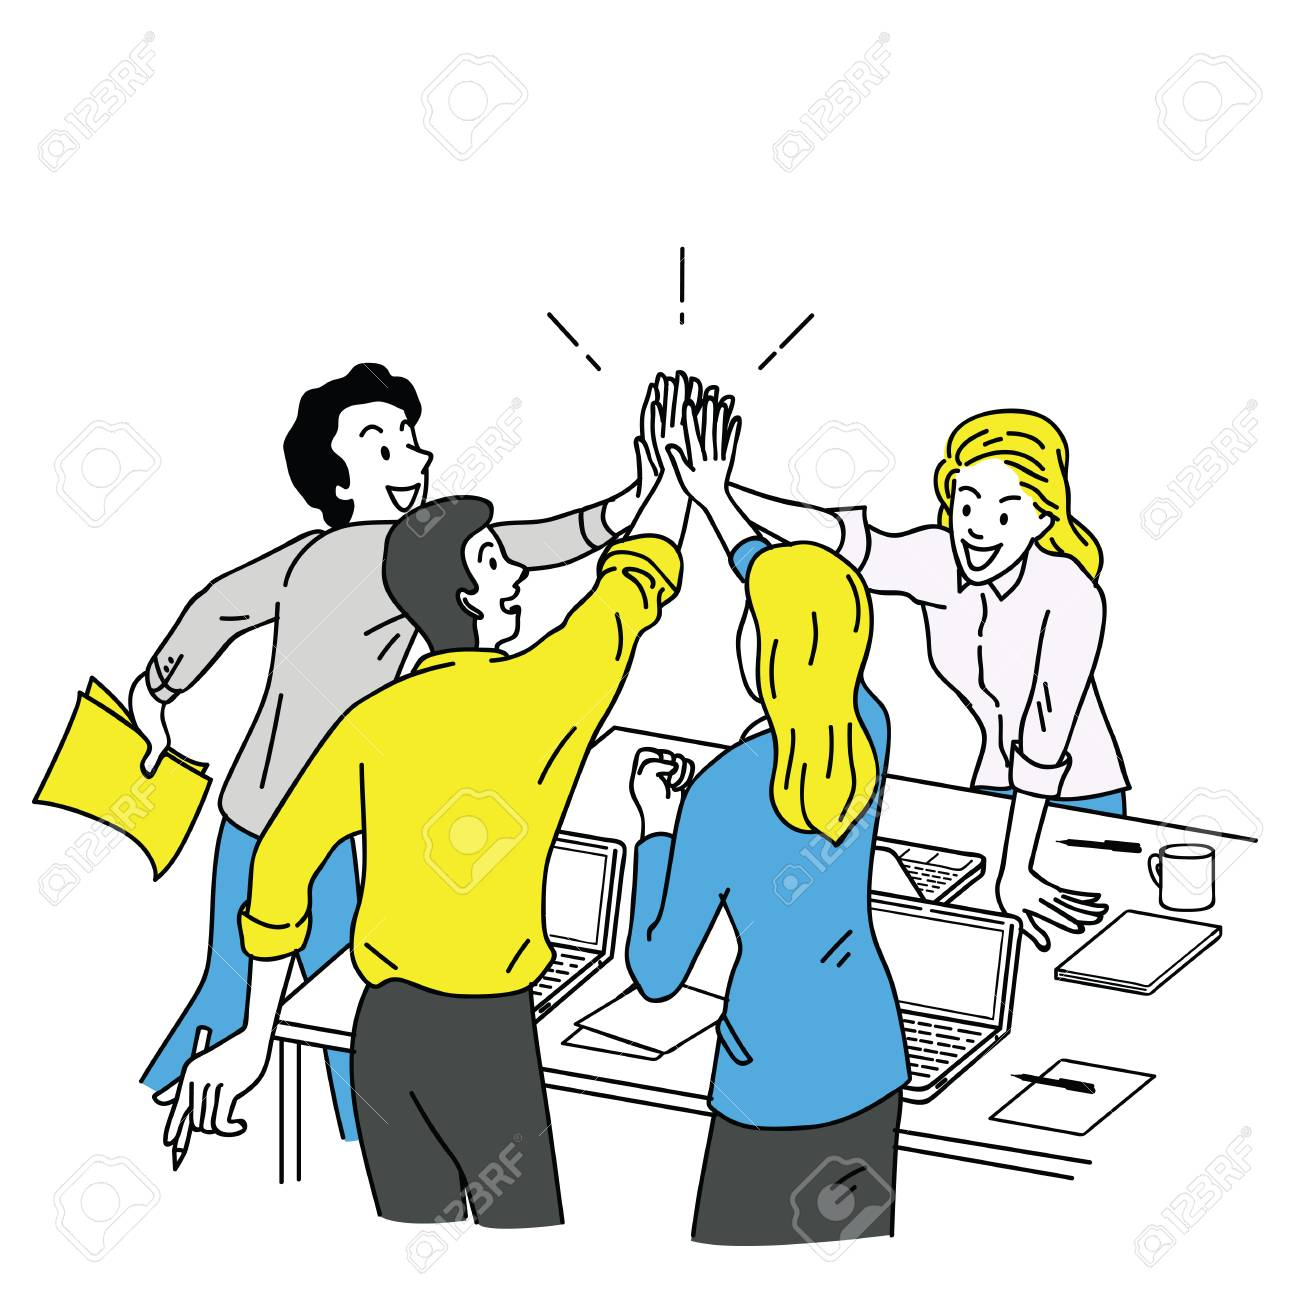 Group of businesspeople, man and woman, giving high five in business concept of corporate, success, congratulation. Outline, linear, thin line art, hand drawn sketch design, simple color style. - 91019709